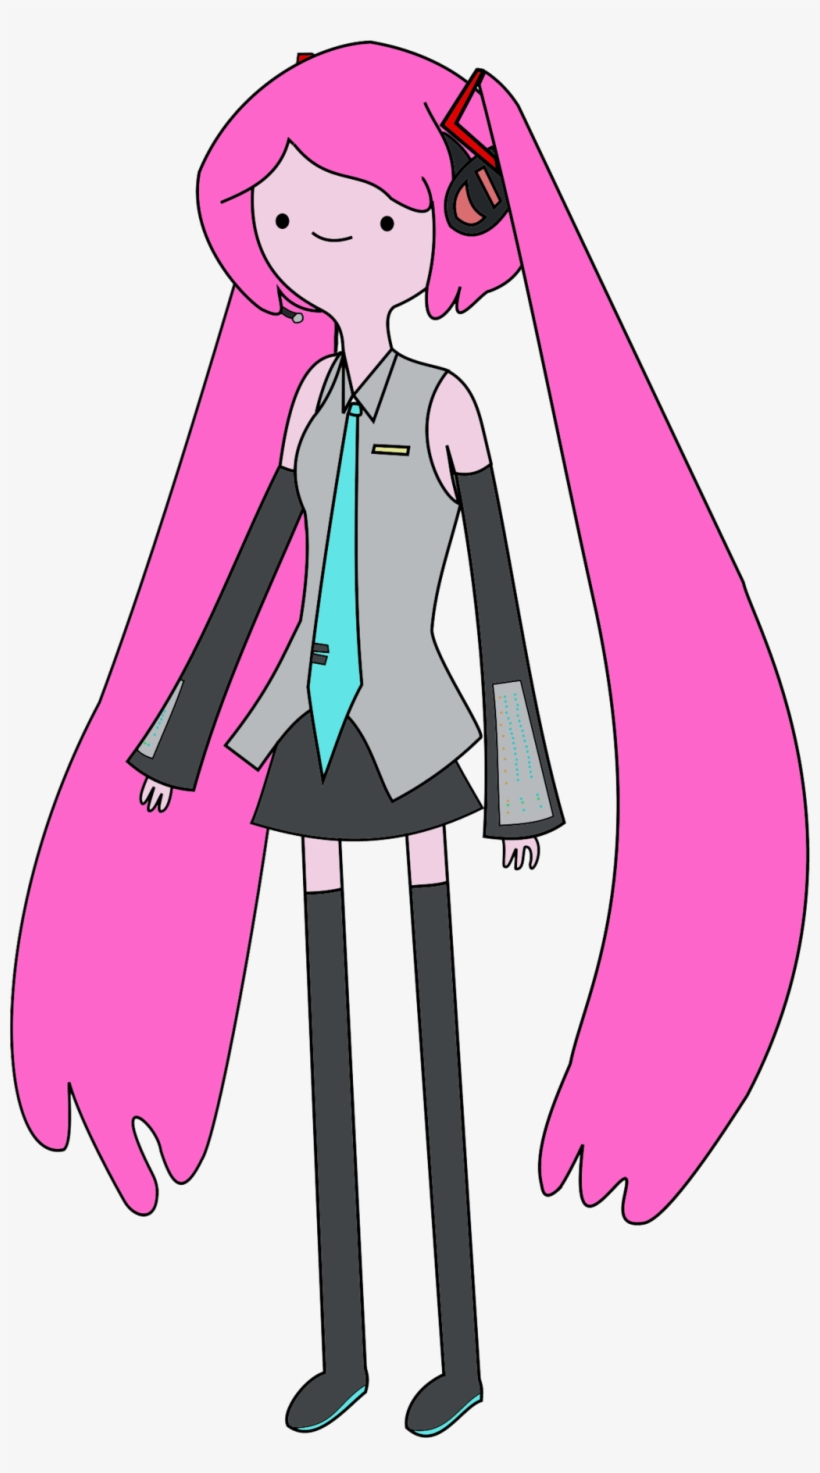 15 Adventure Time Princess Bubblegum Png For Free On Adventure